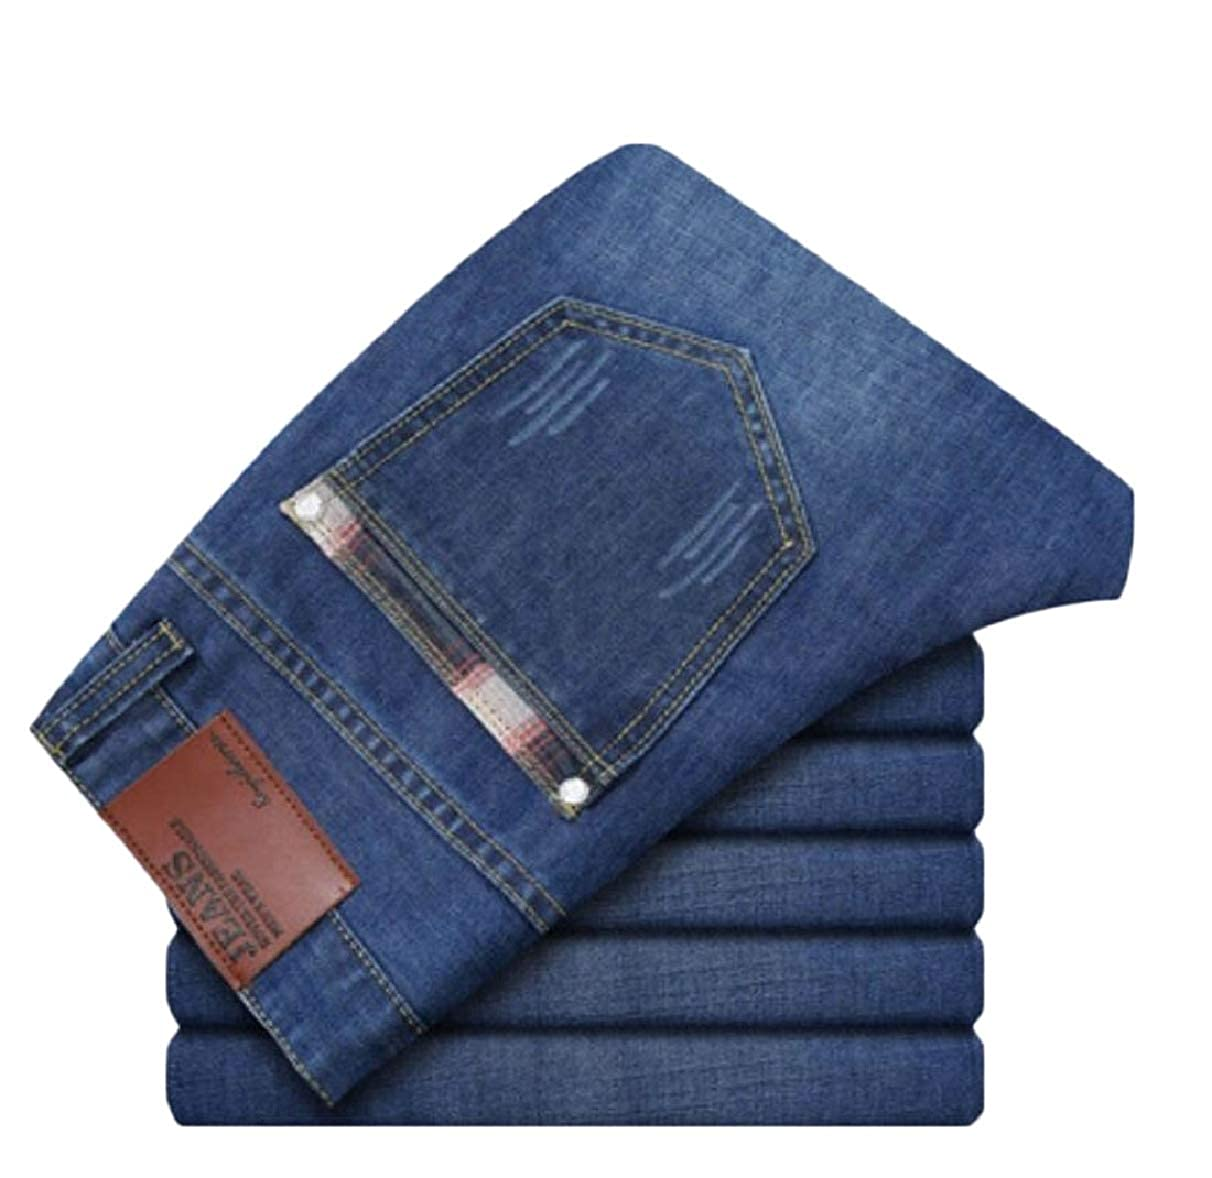 ZXFHZS Mens Faux Fur Lined Relaxed Fit Solid Color Thicken Denim Pants